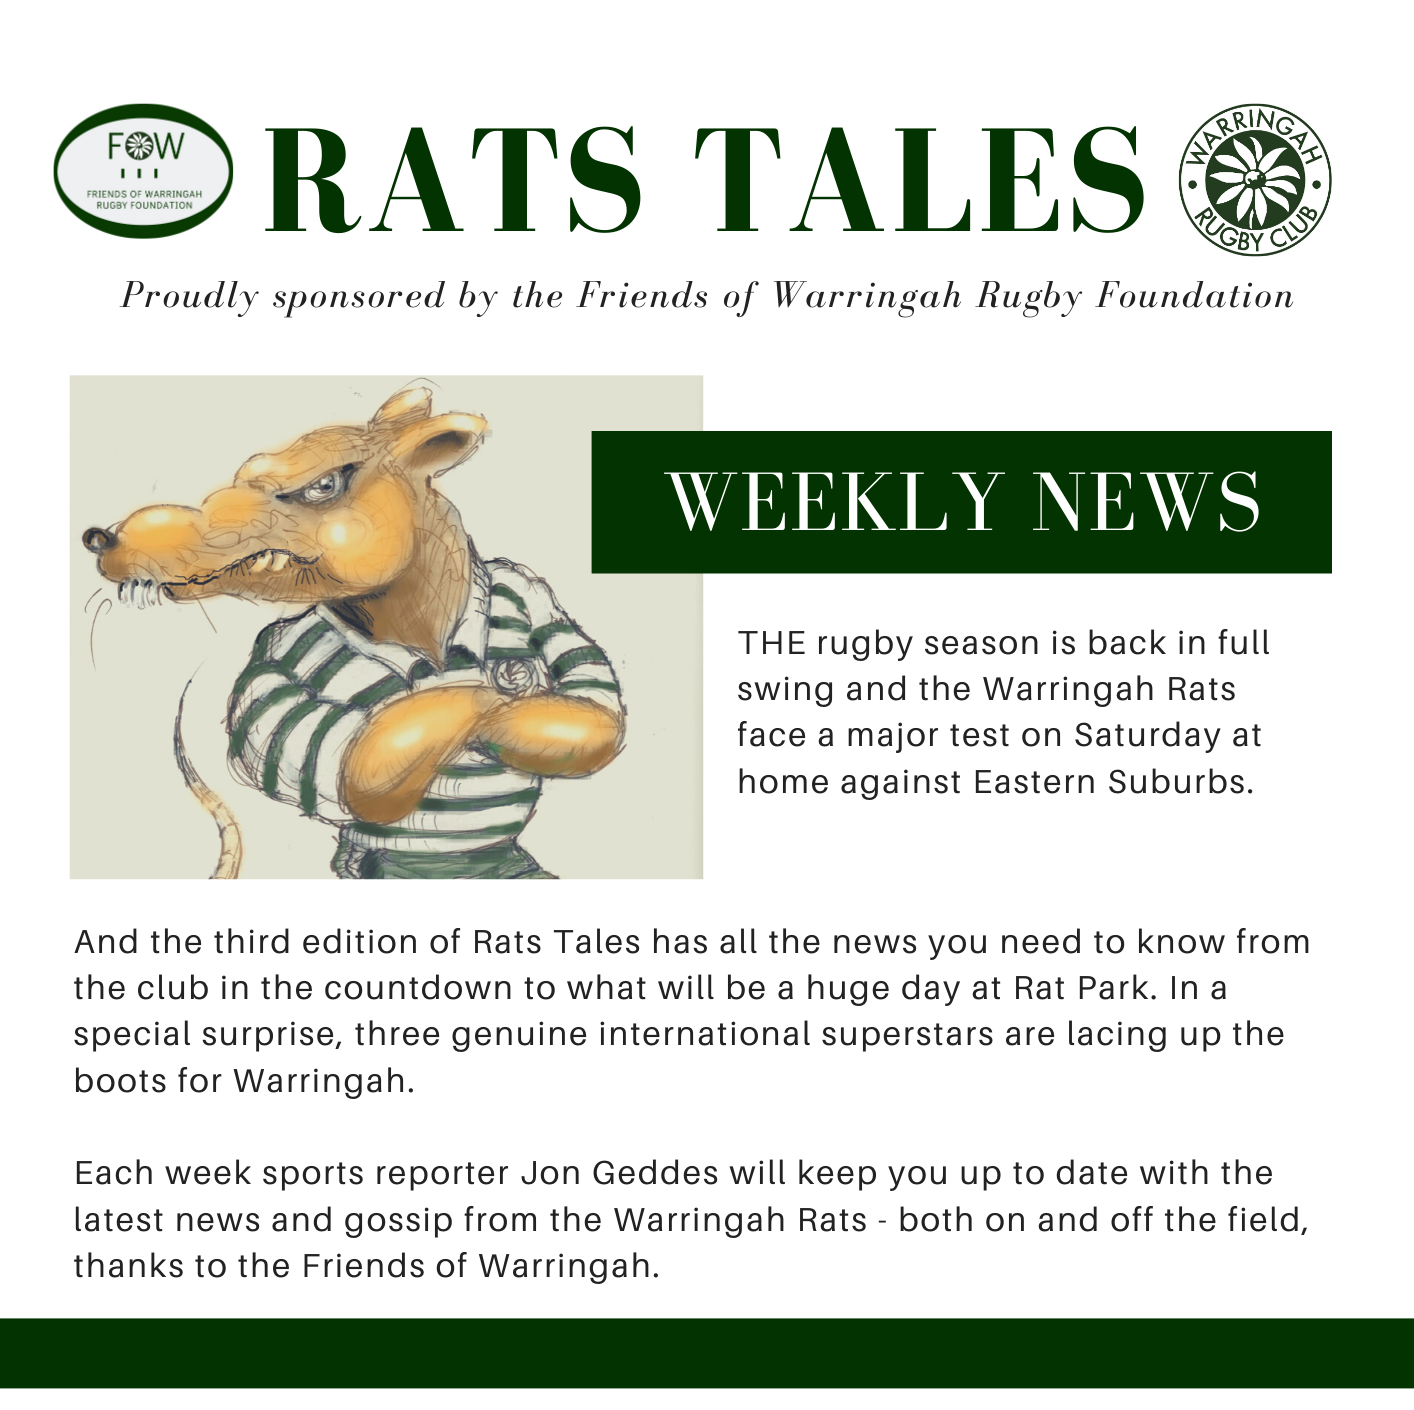 Rats Tales Newsletter - Proudly sponsored by the Friends of Warringah Rugby Foun...